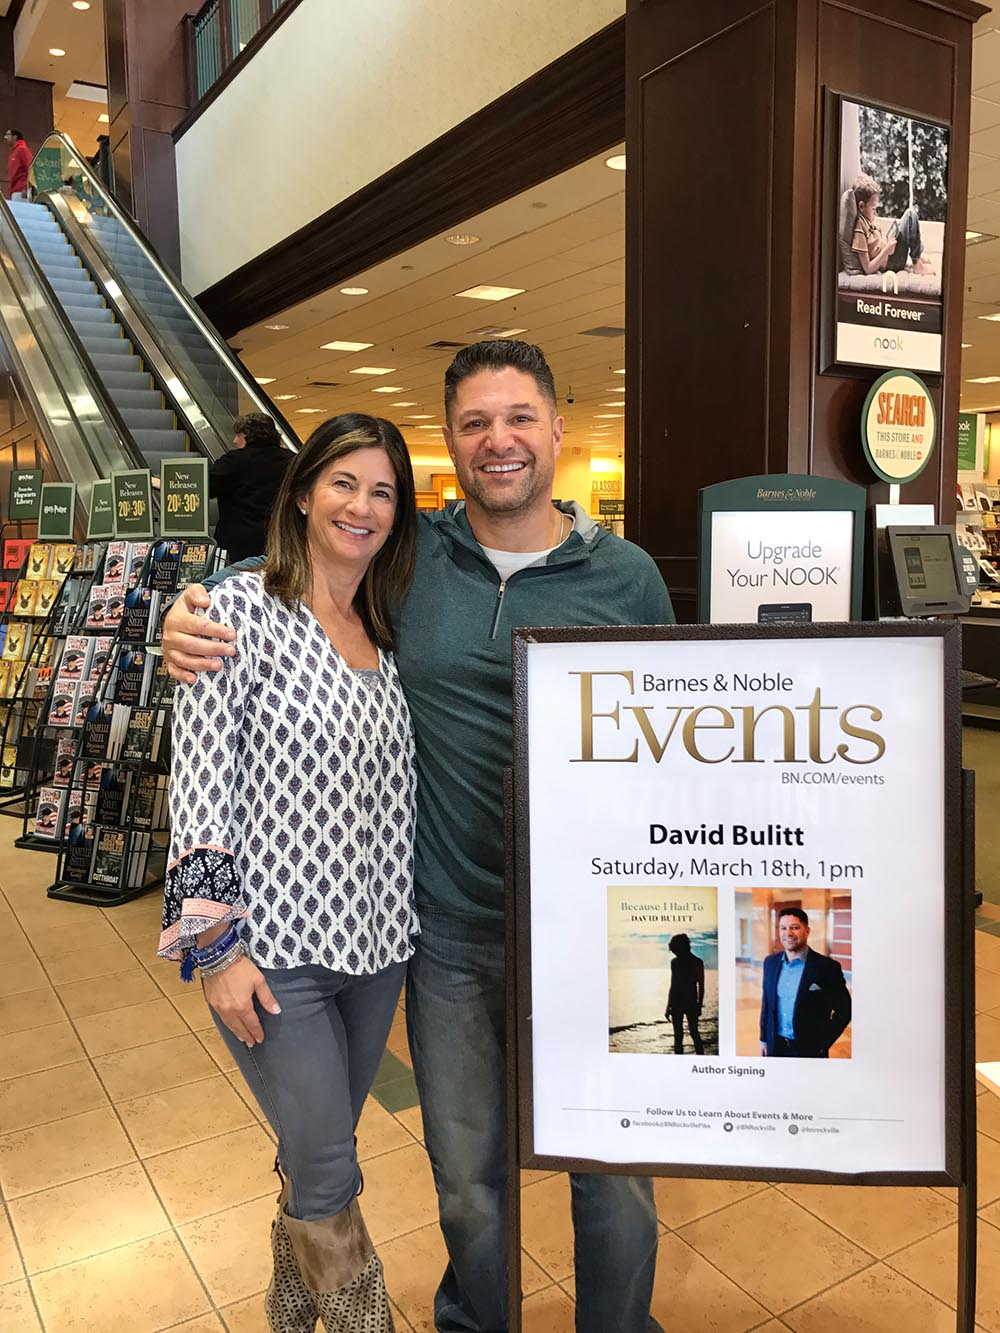 Photos from Book Signing – Barnes & Noble (March 18, 2017)